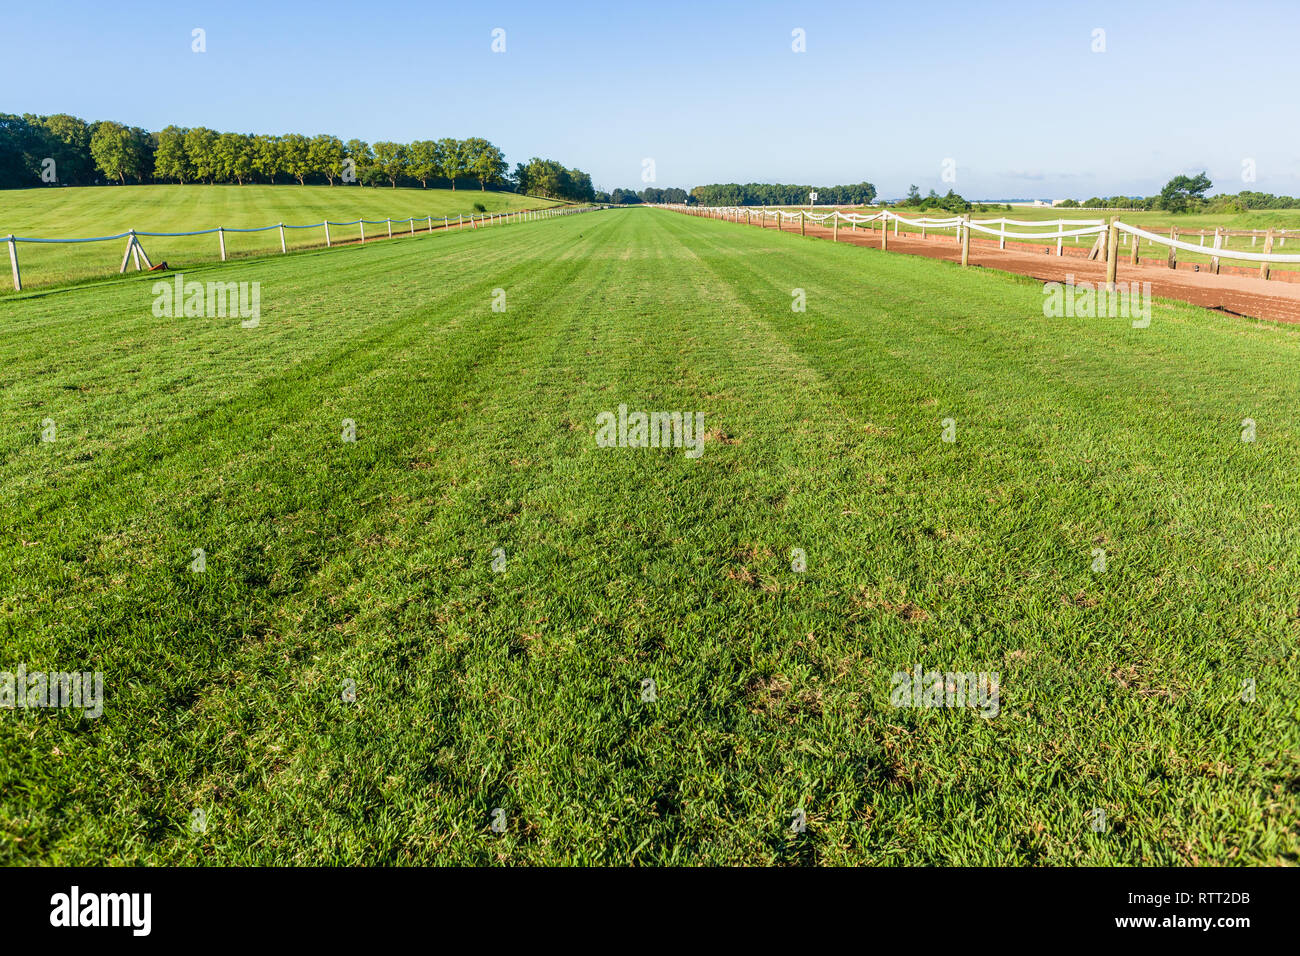 Horse race grass training  track railing fence blue sky equestrian countryside landscape. - Stock Image